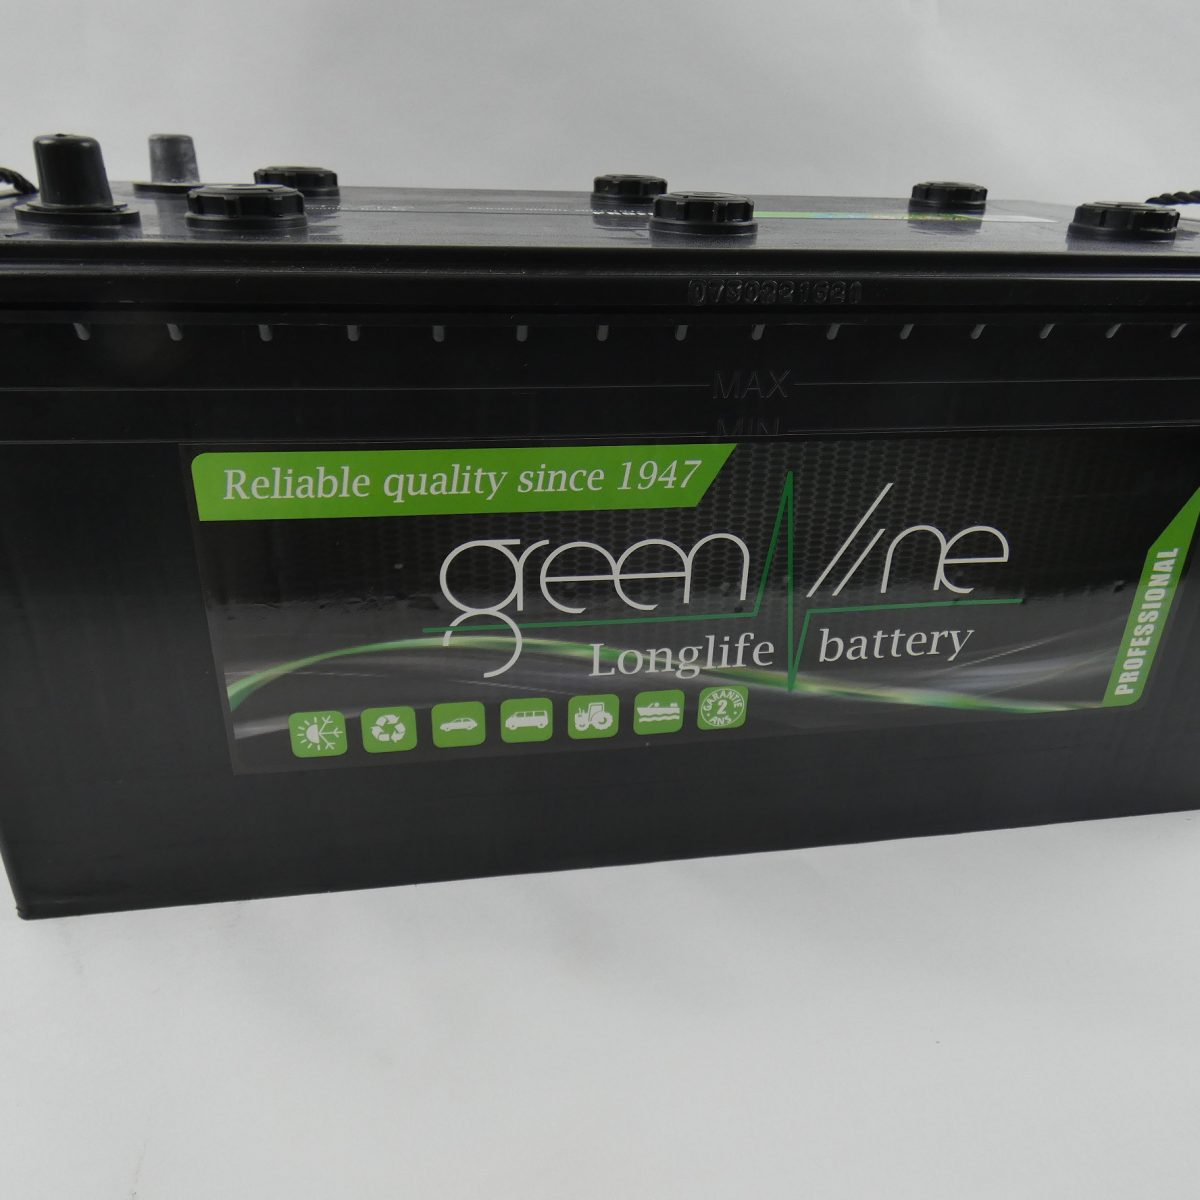 Greenline universele accu